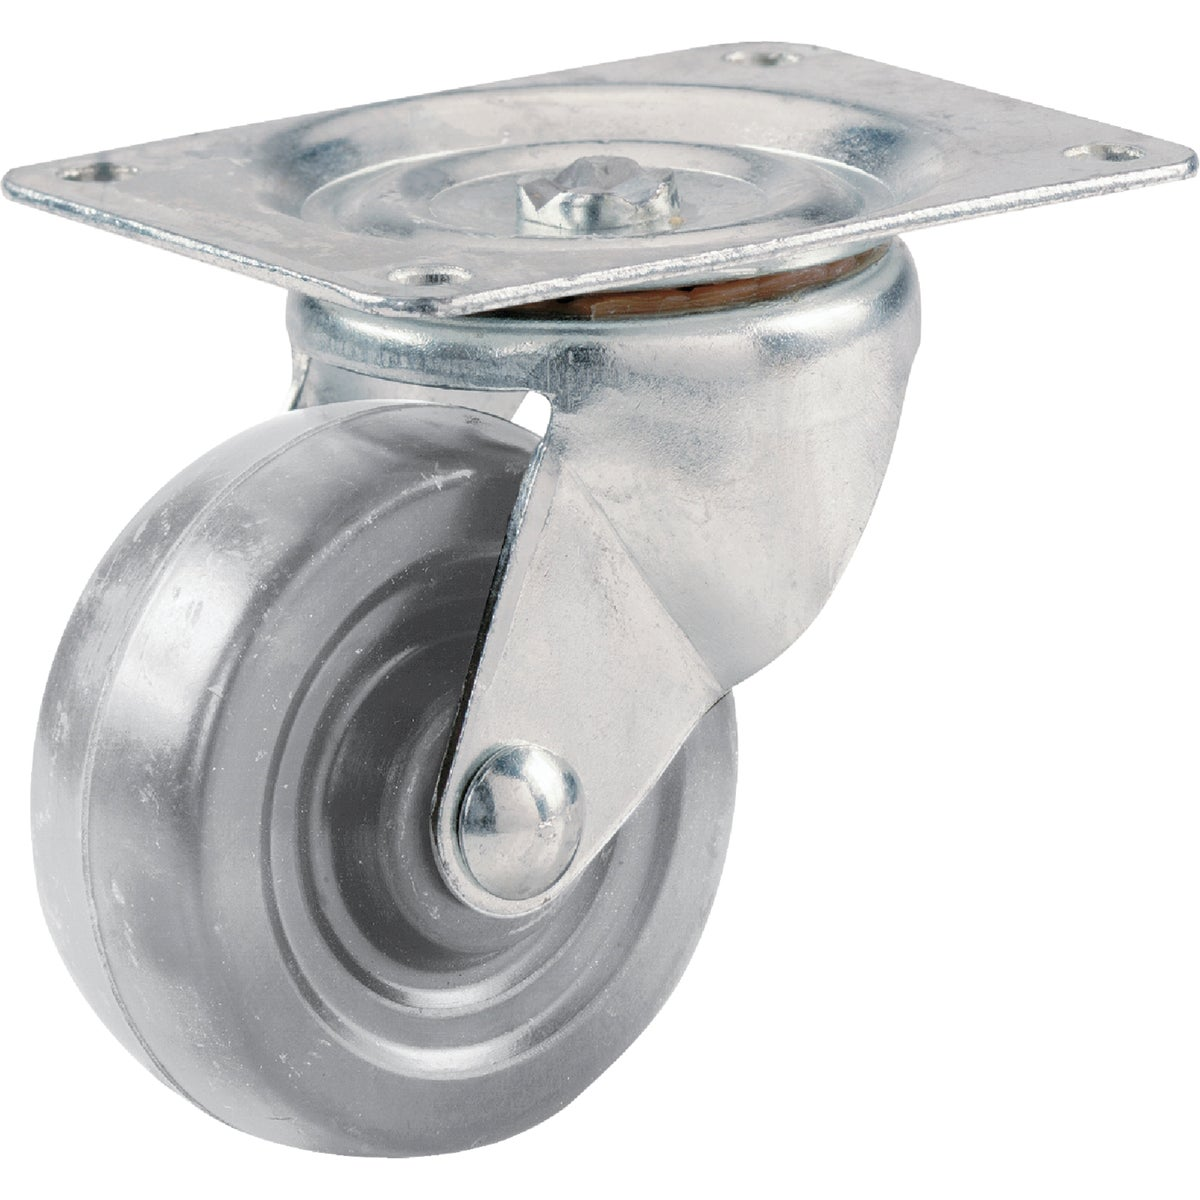 "4"" SWIVEL CASTER - 9279 by Shepherd Hardware"